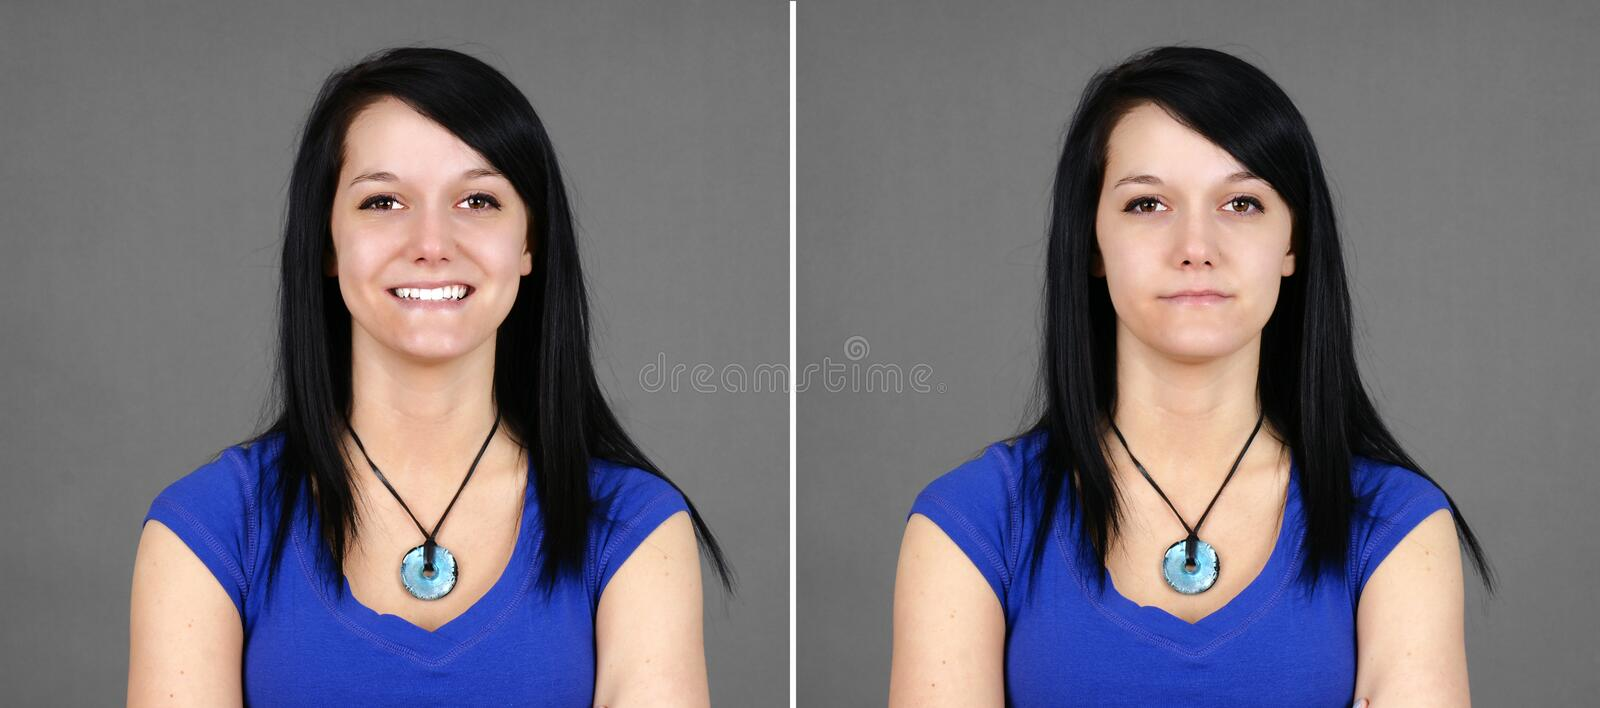 Choice of happy and neutral young woman portrait stock photo